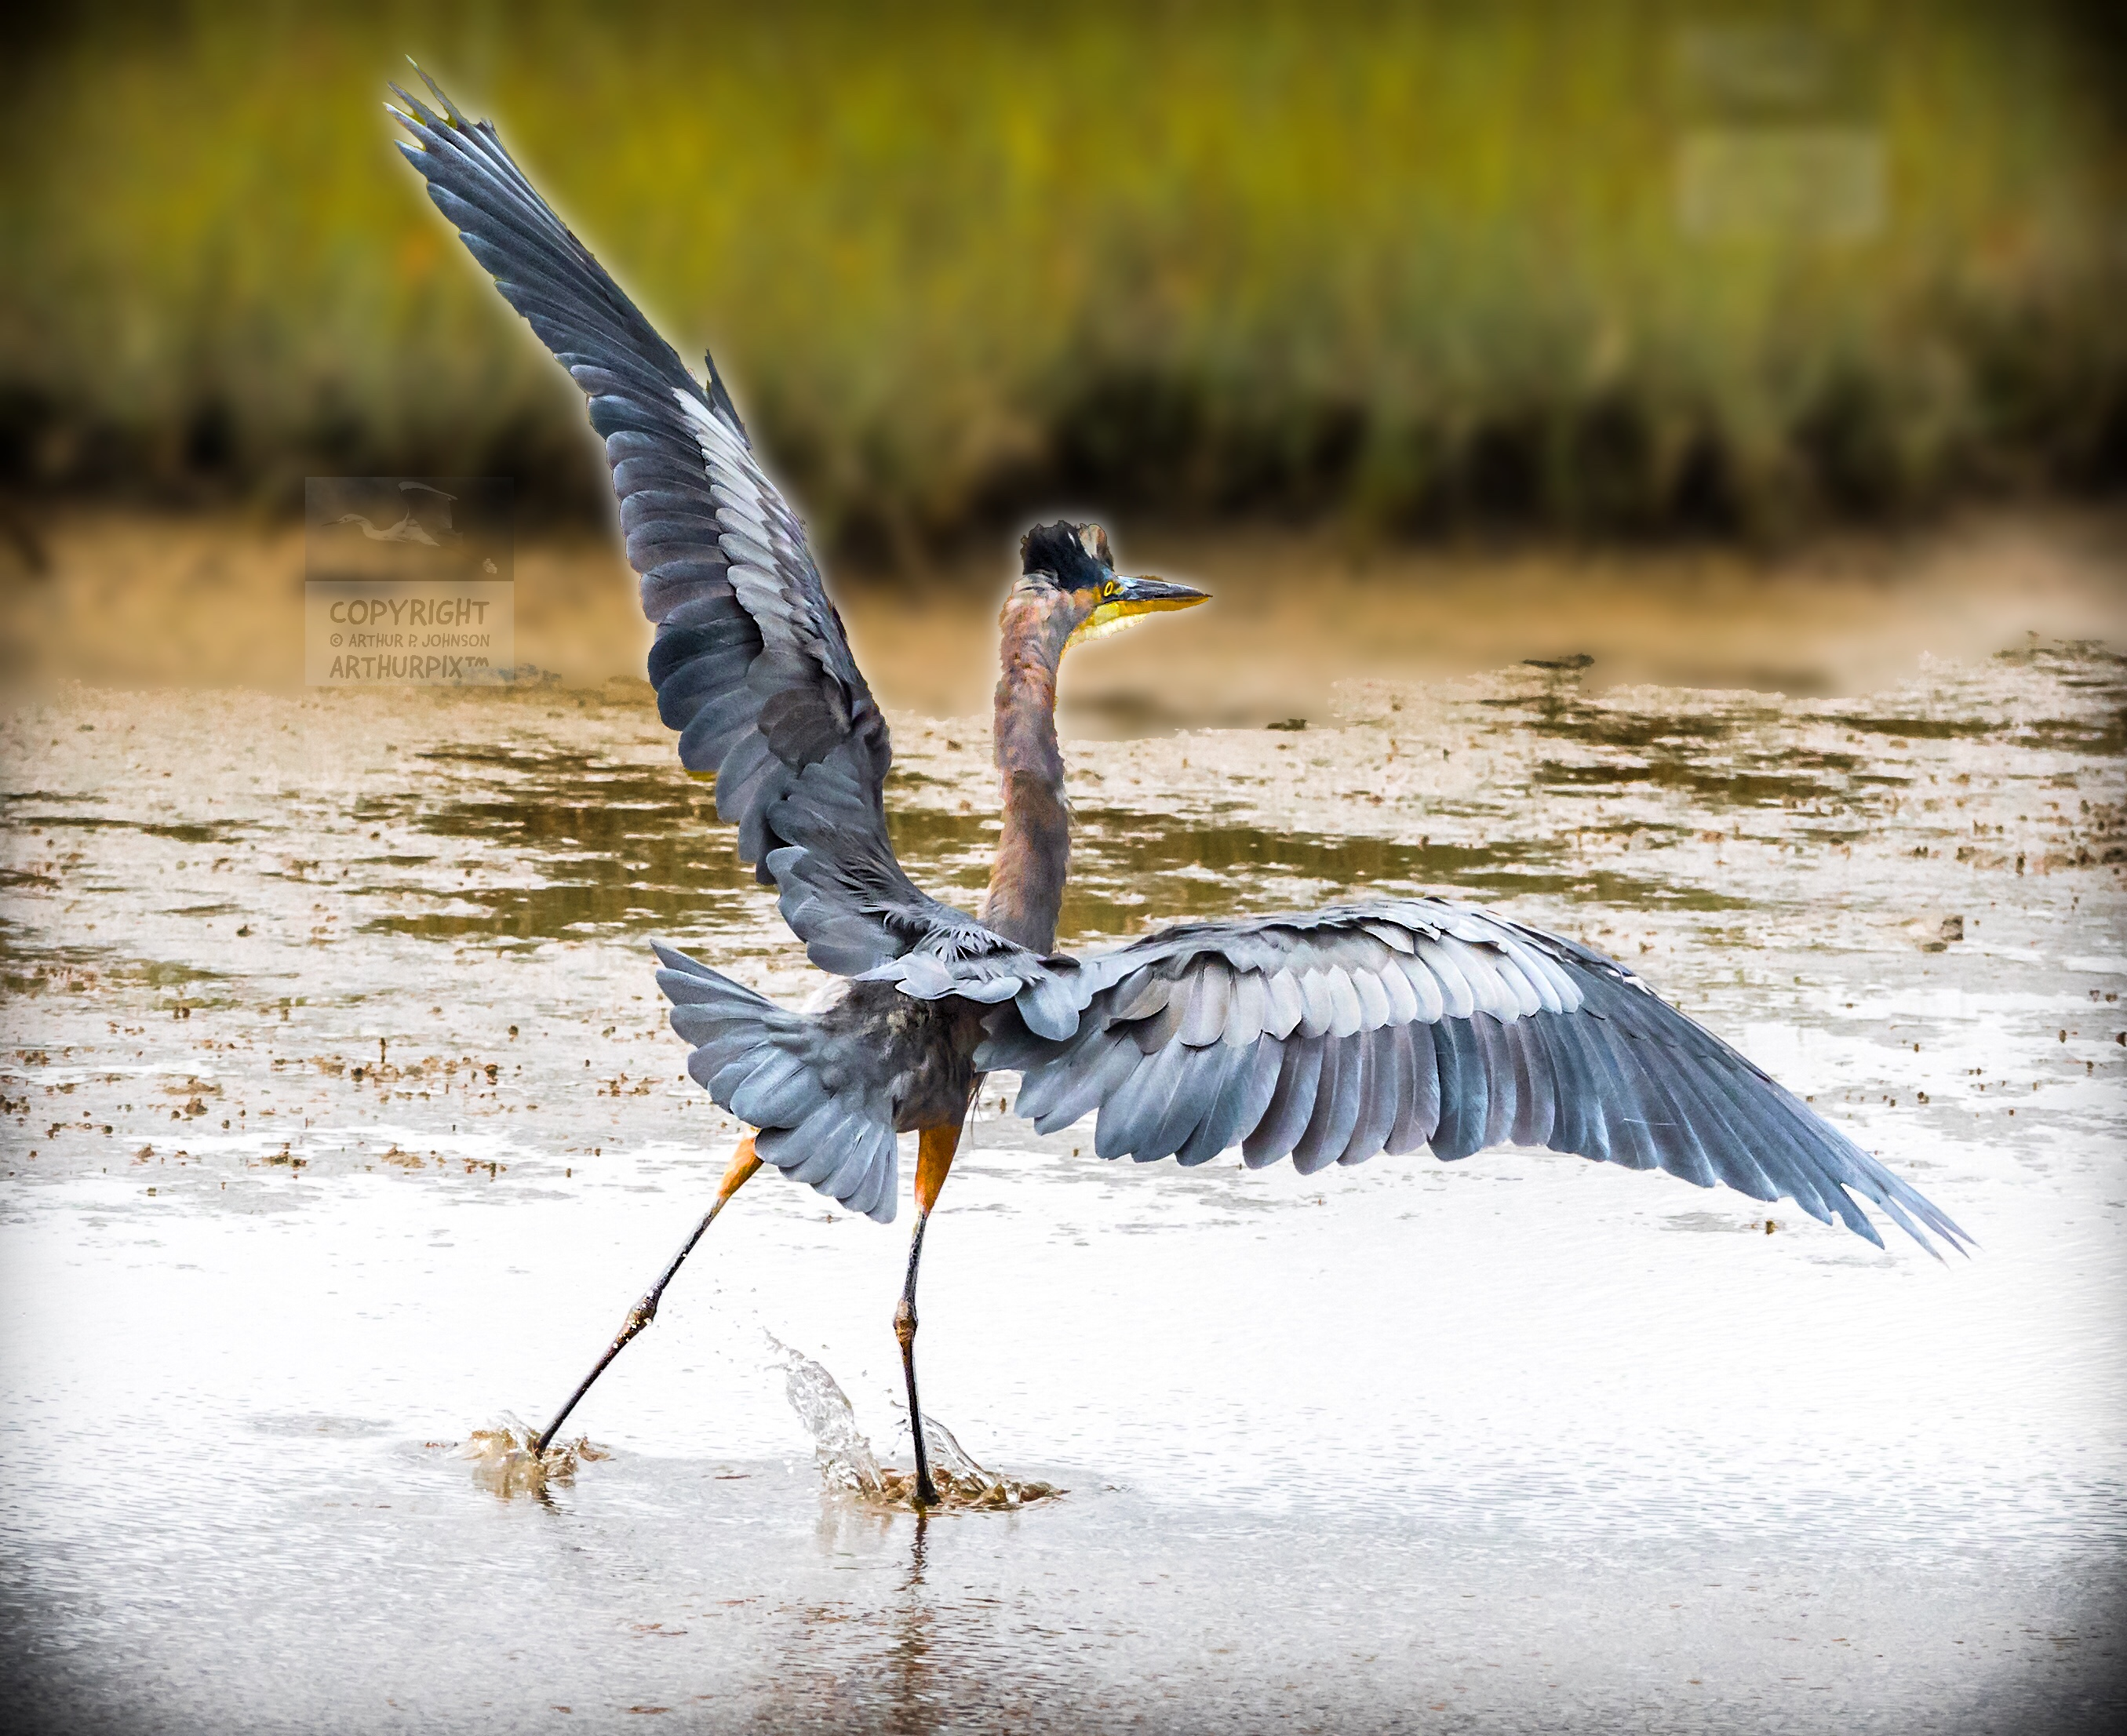 Little Blue Heron, wings extended, seen from the back.